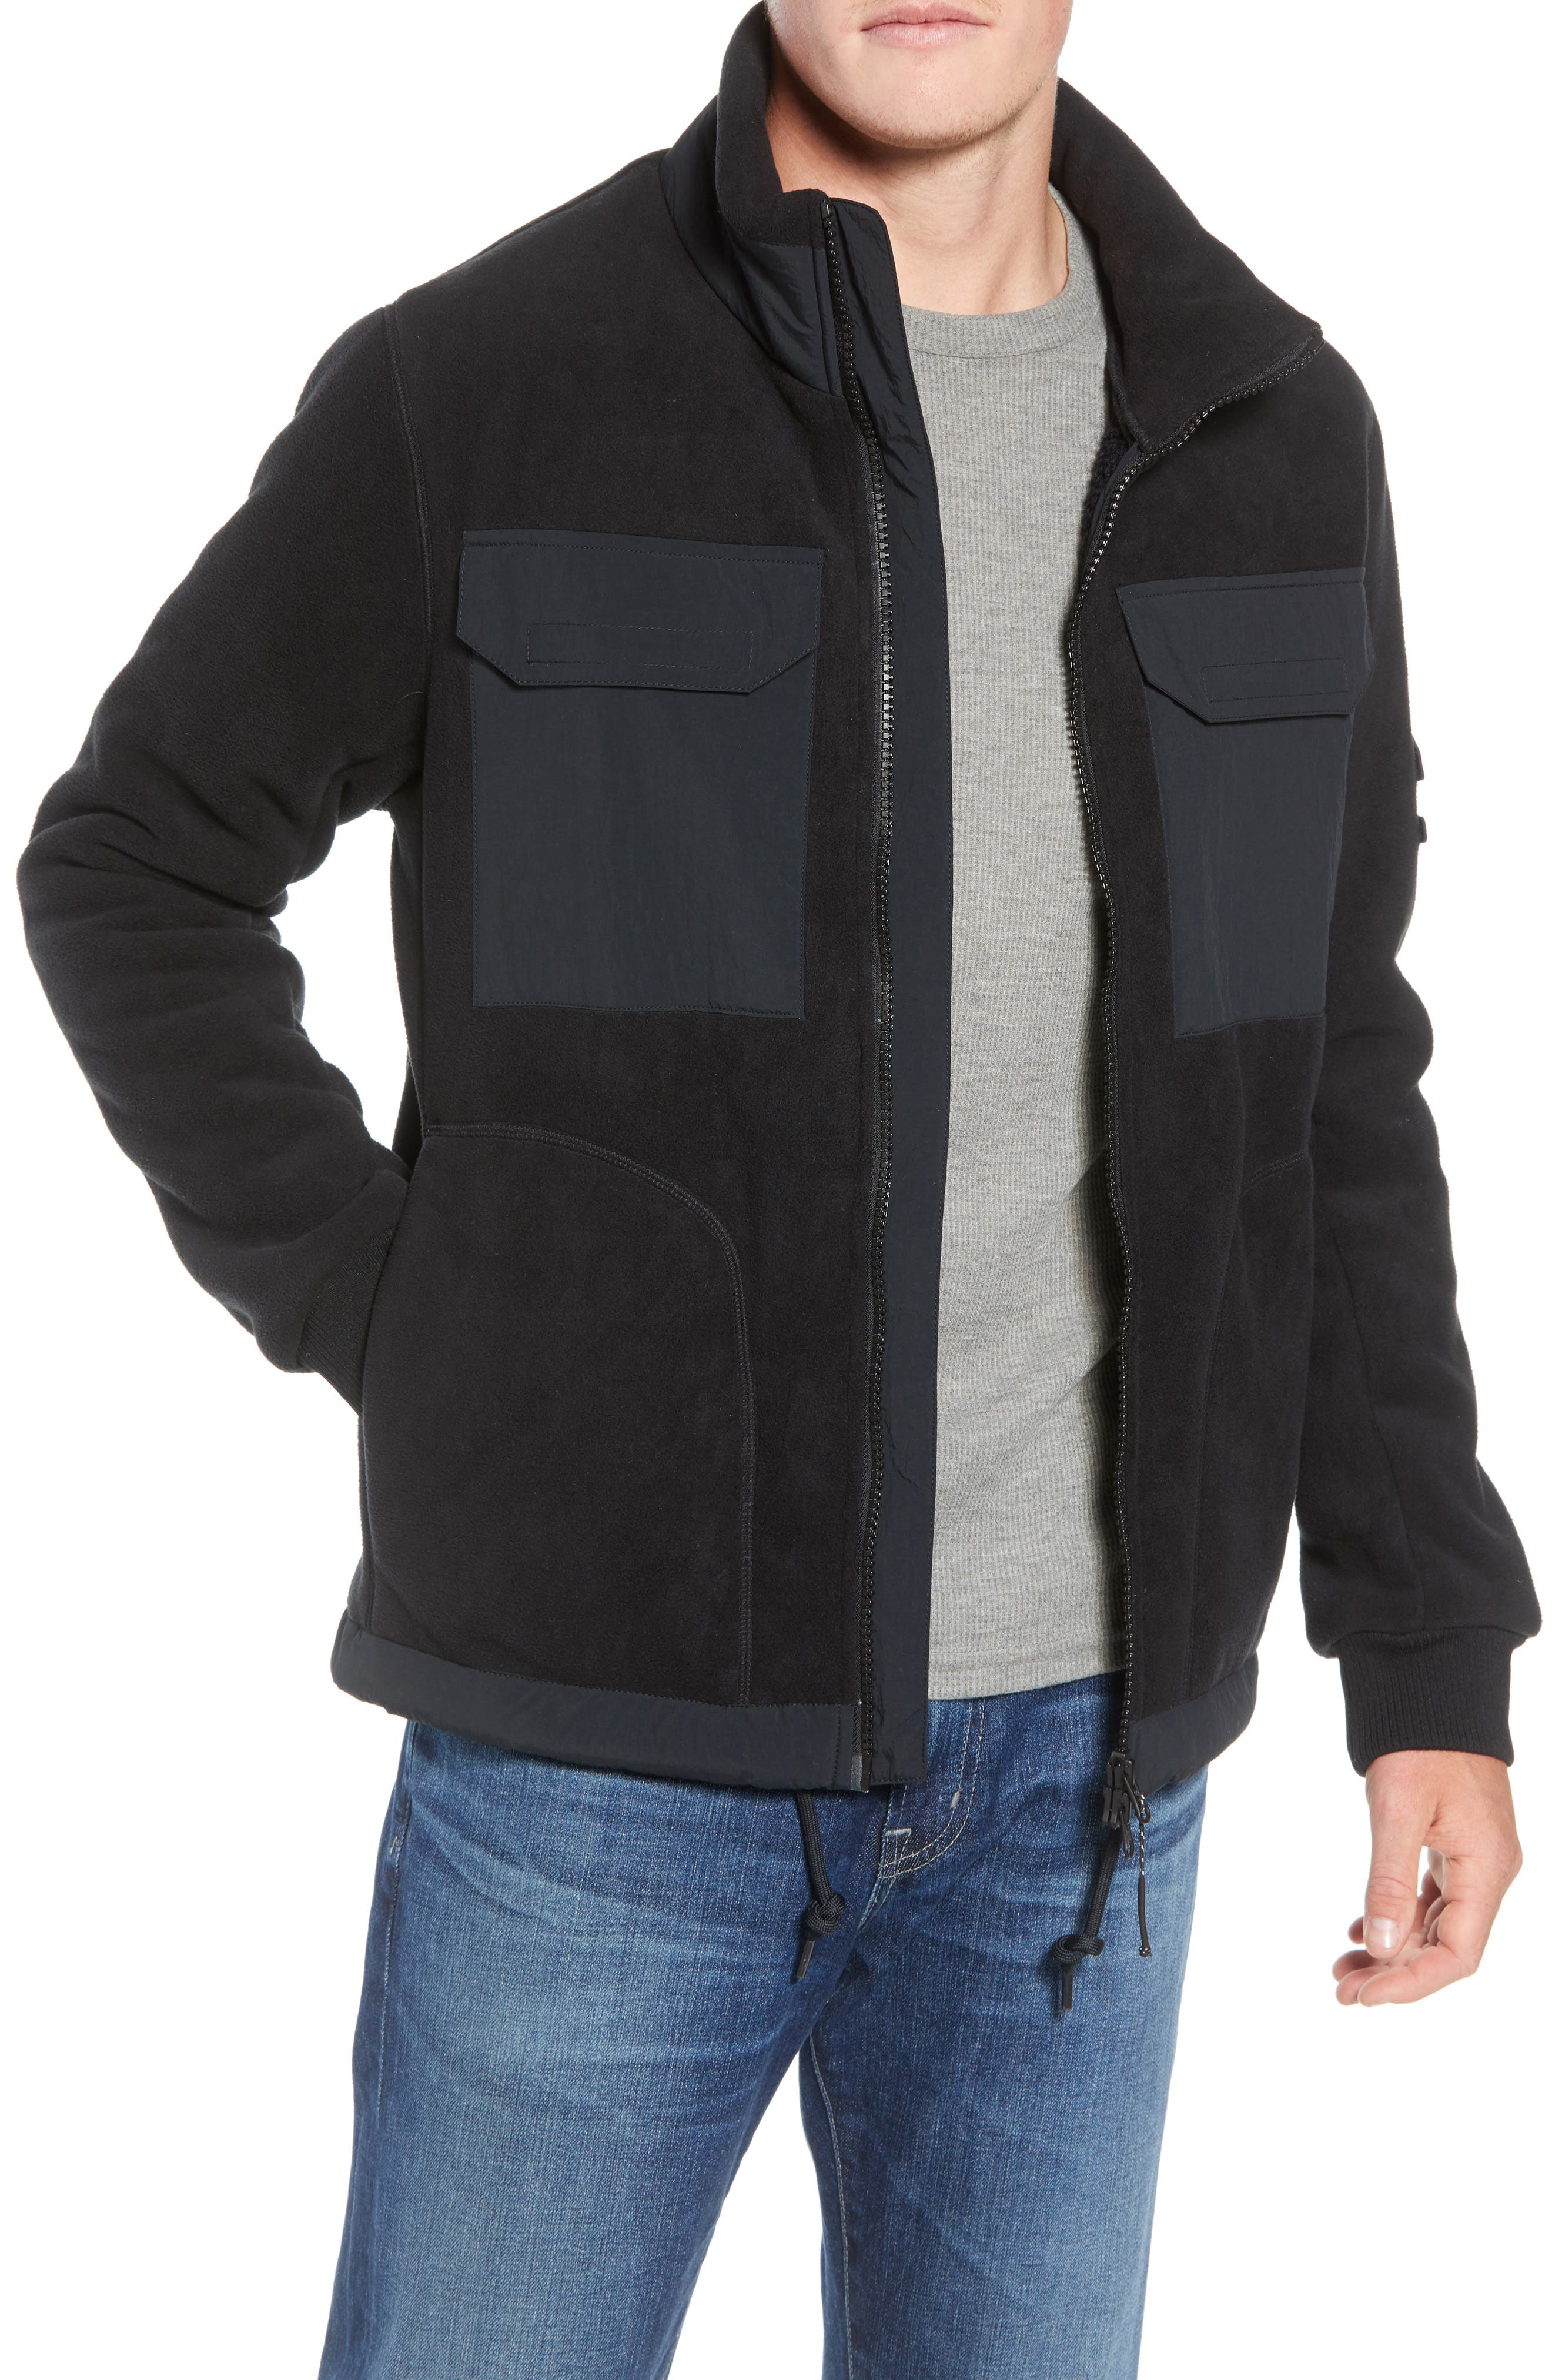 Schoening Zip Fleece Jacket,                             Main thumbnail 1, color,                             BLACK